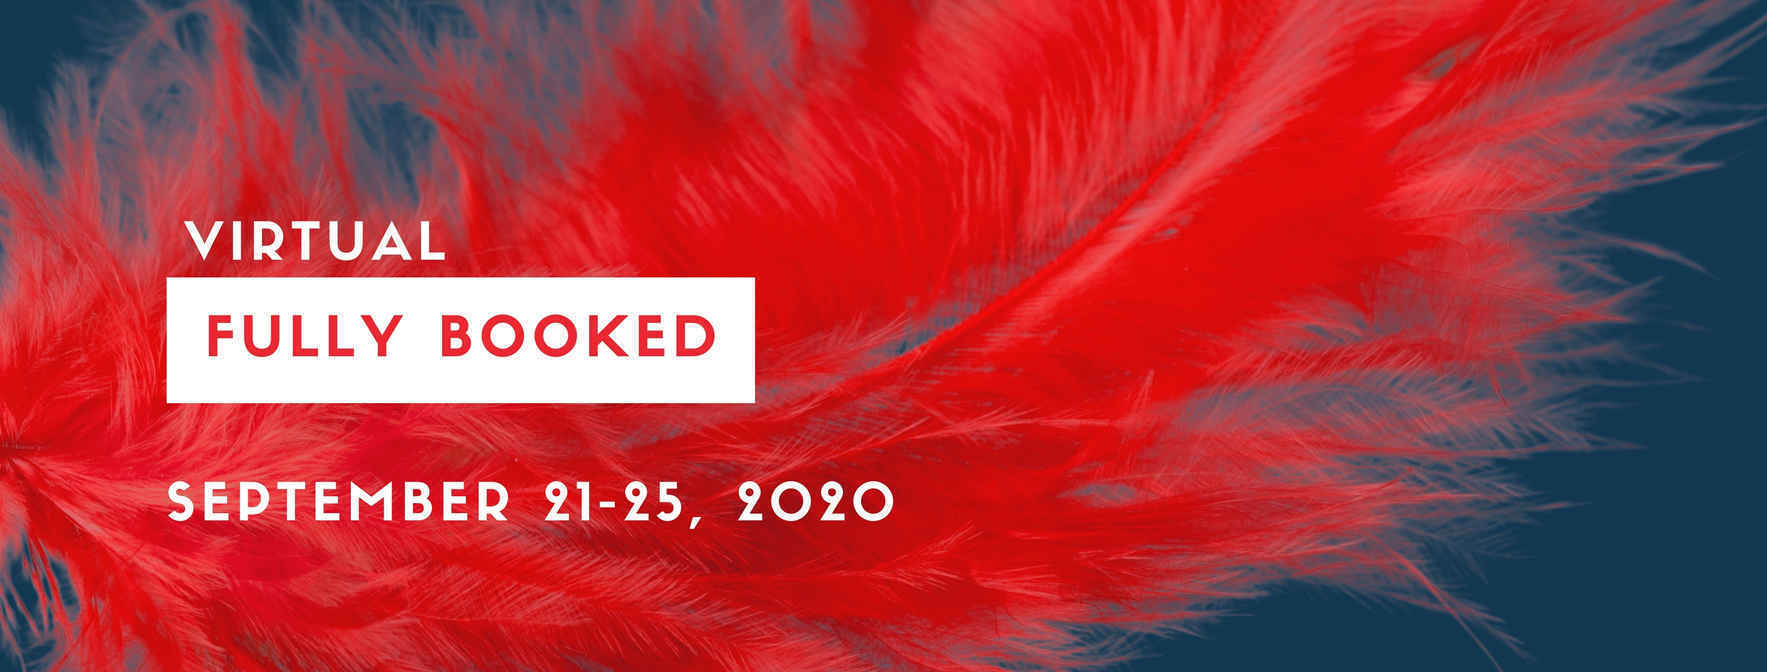 2020 Fully Booked: 5th Annual Tuleburg Press Fundraiser image